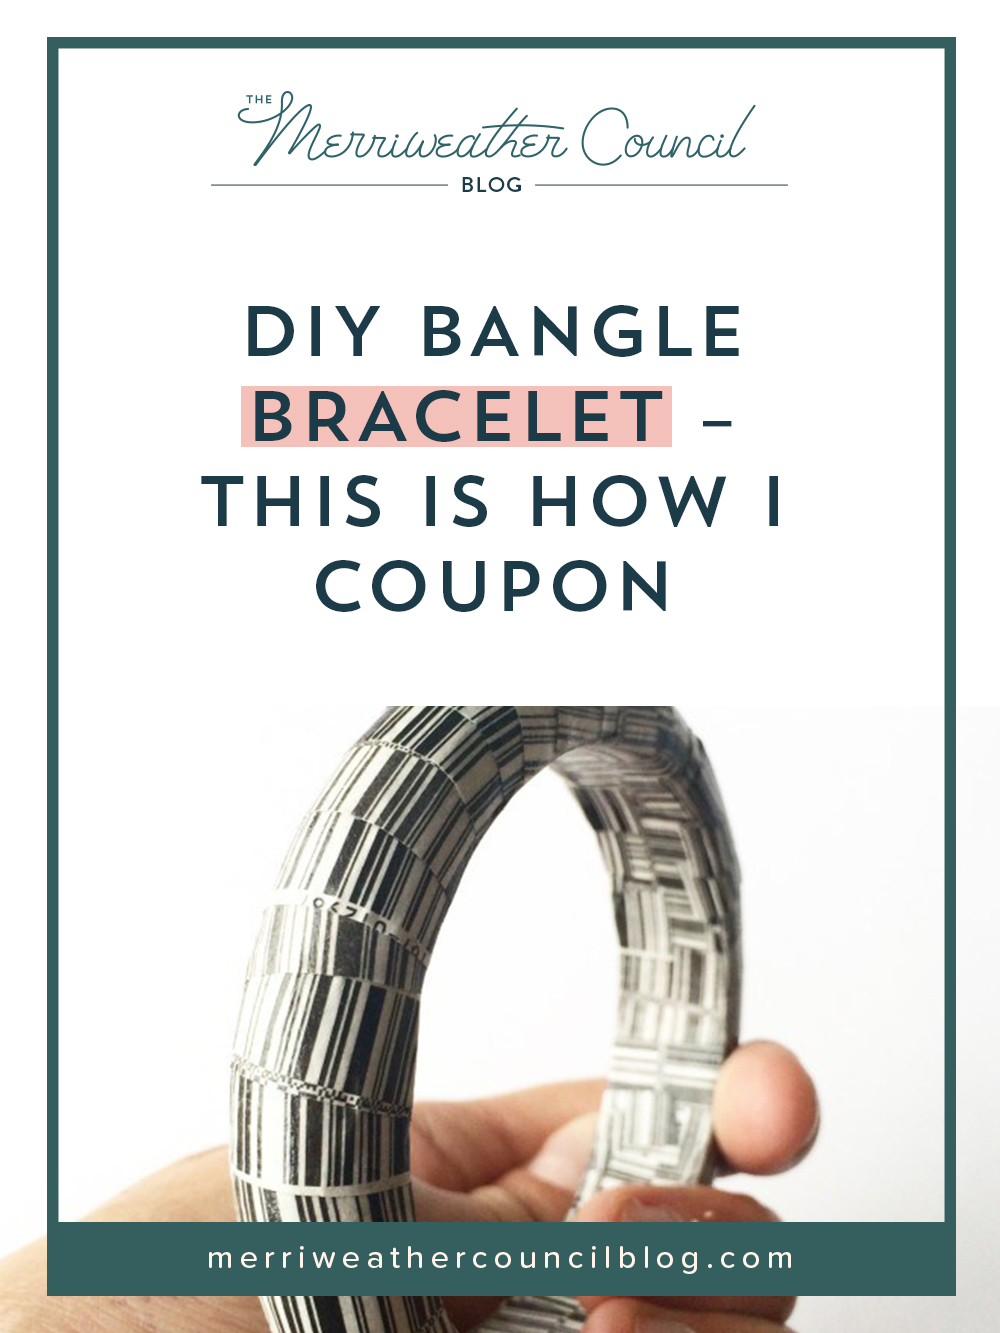 DIY decoupaged bangle bracelet | the merriweather council blog